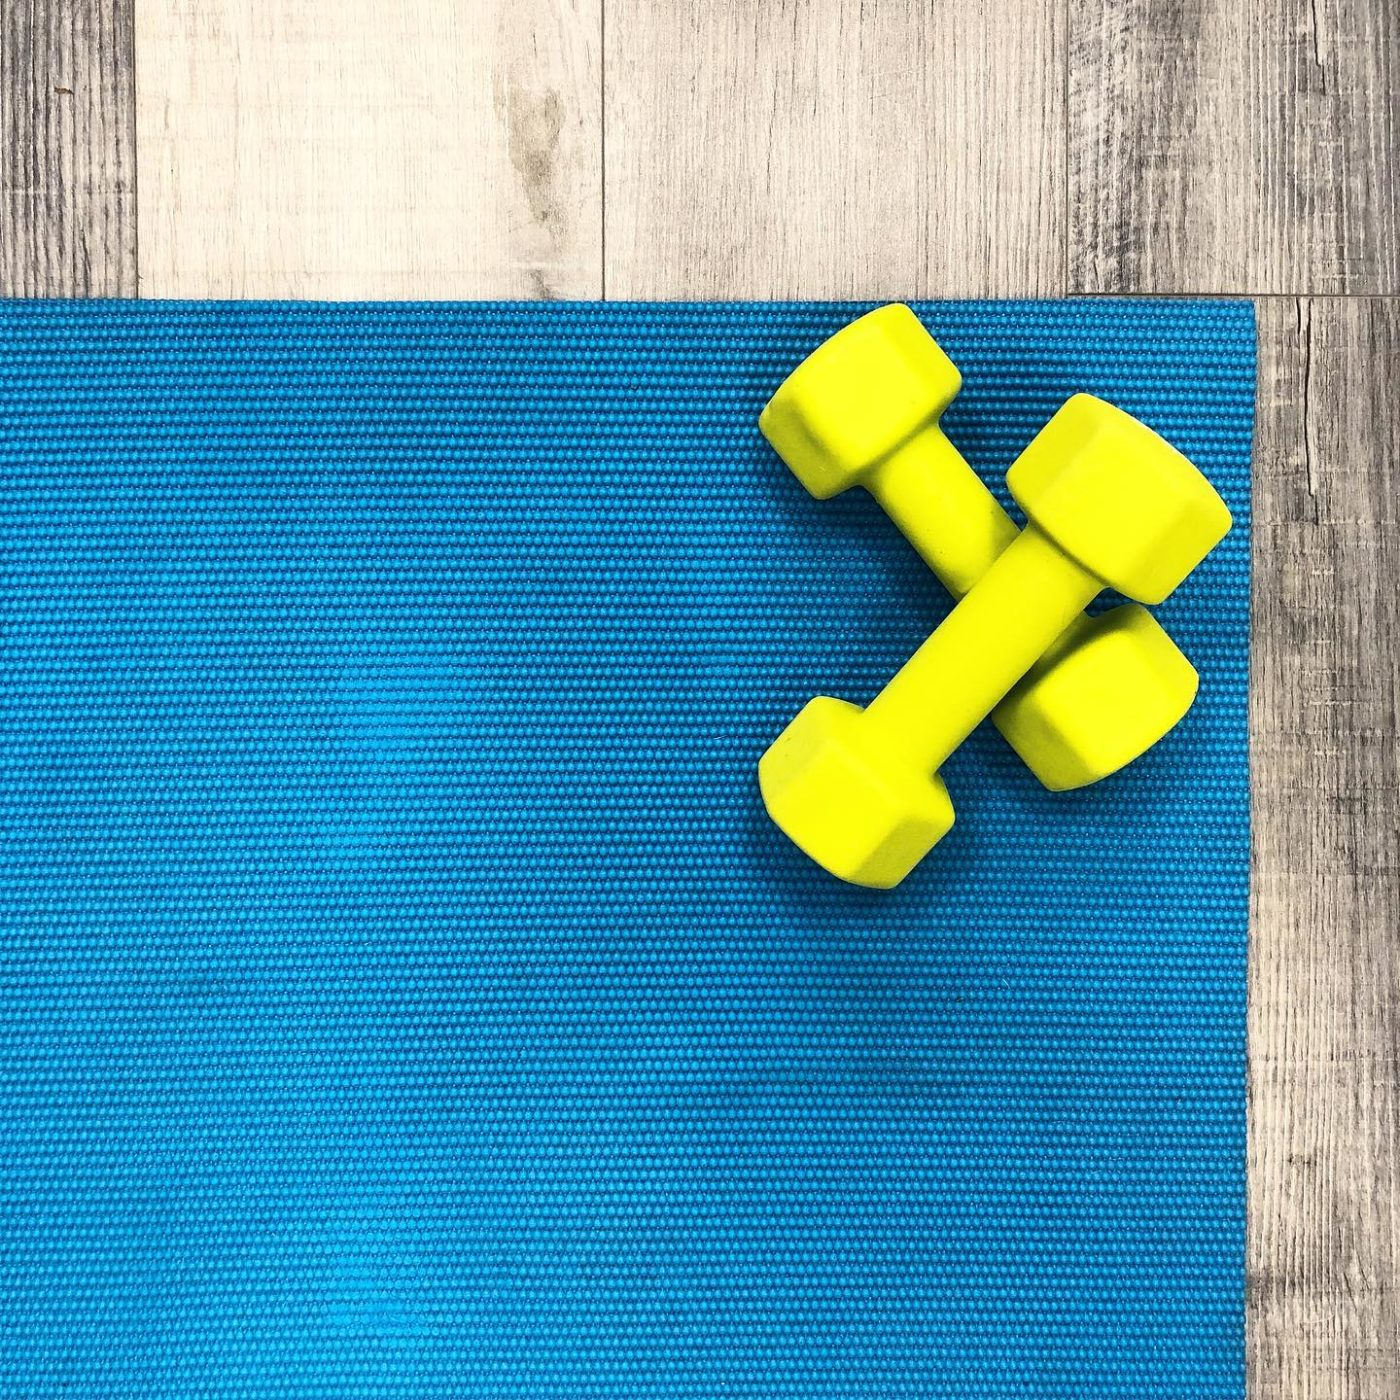 Yoga, pilates, calisthenics, walking and running are great ways to keep moving with very minimal equipment